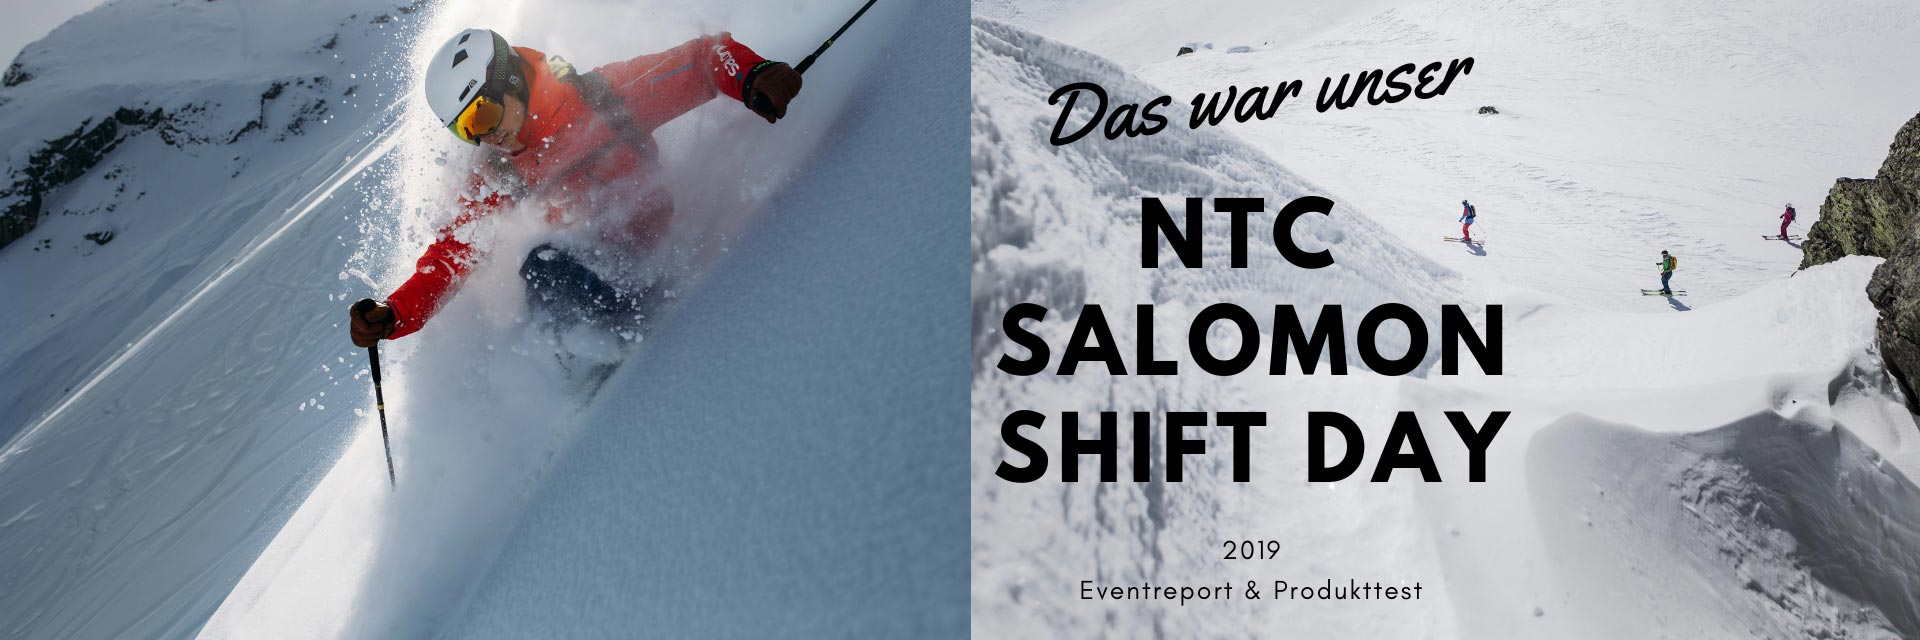 NTC Salomon Shift Day